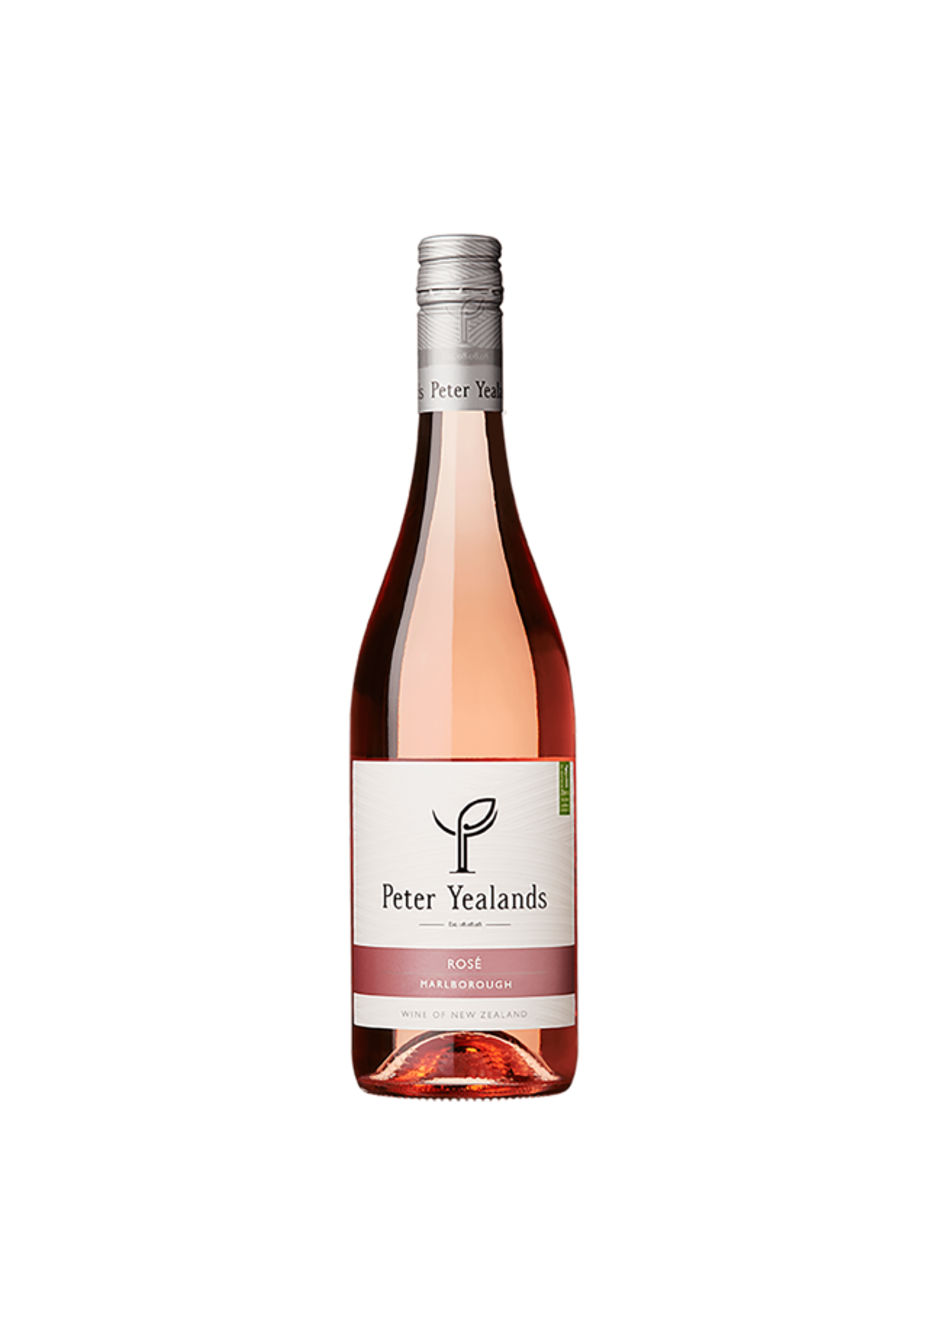 Peter Yealands Marlborough Rosé 2018